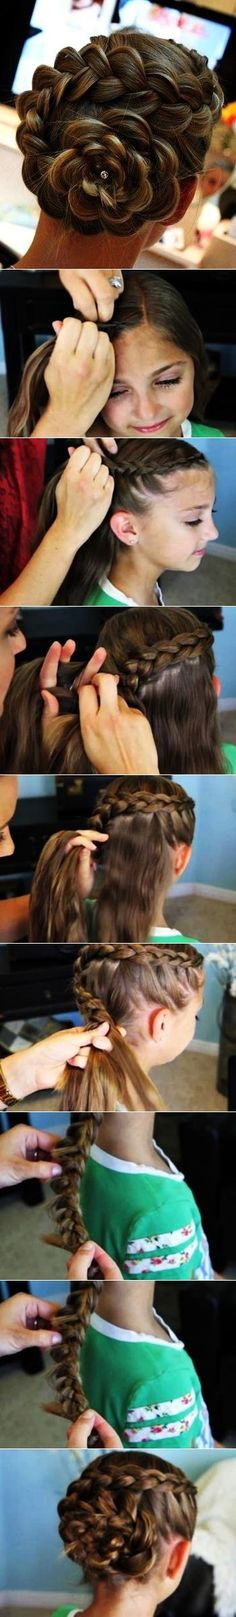 DIY Braided Flower Hair Style | www.FabArtDIY.com